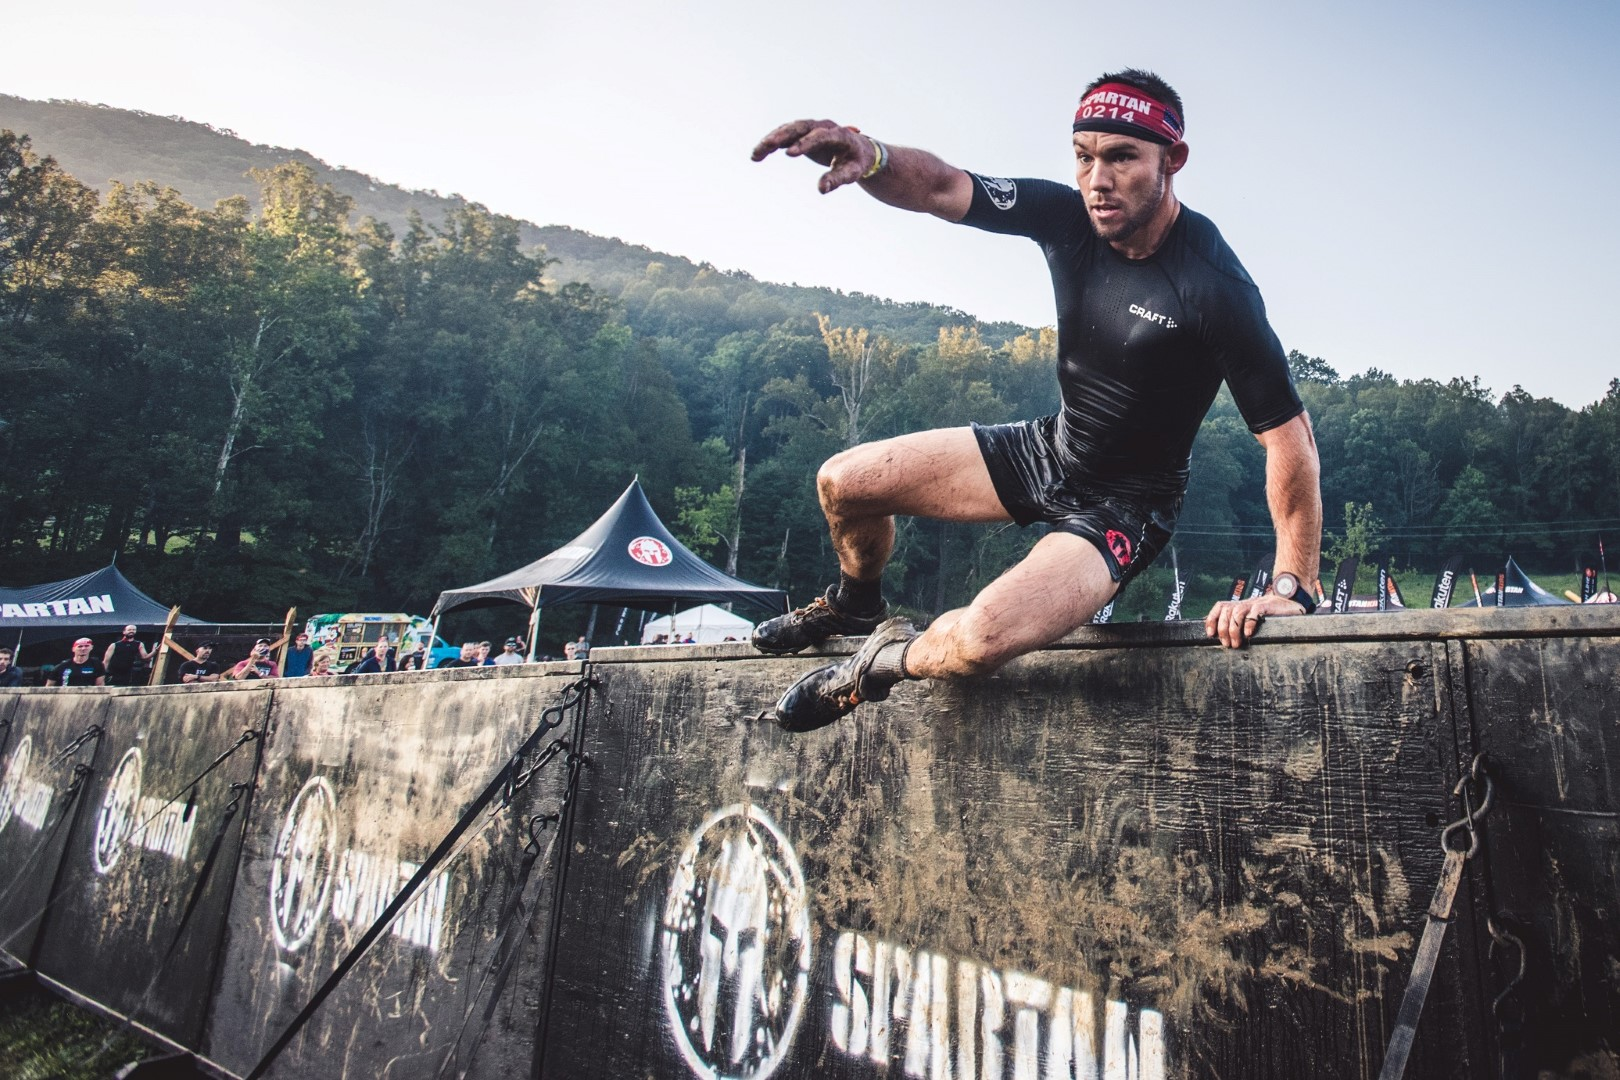 Epic Spartan World Championship to take place in UAE coinciding with the 50th anniversary of UAE National Day